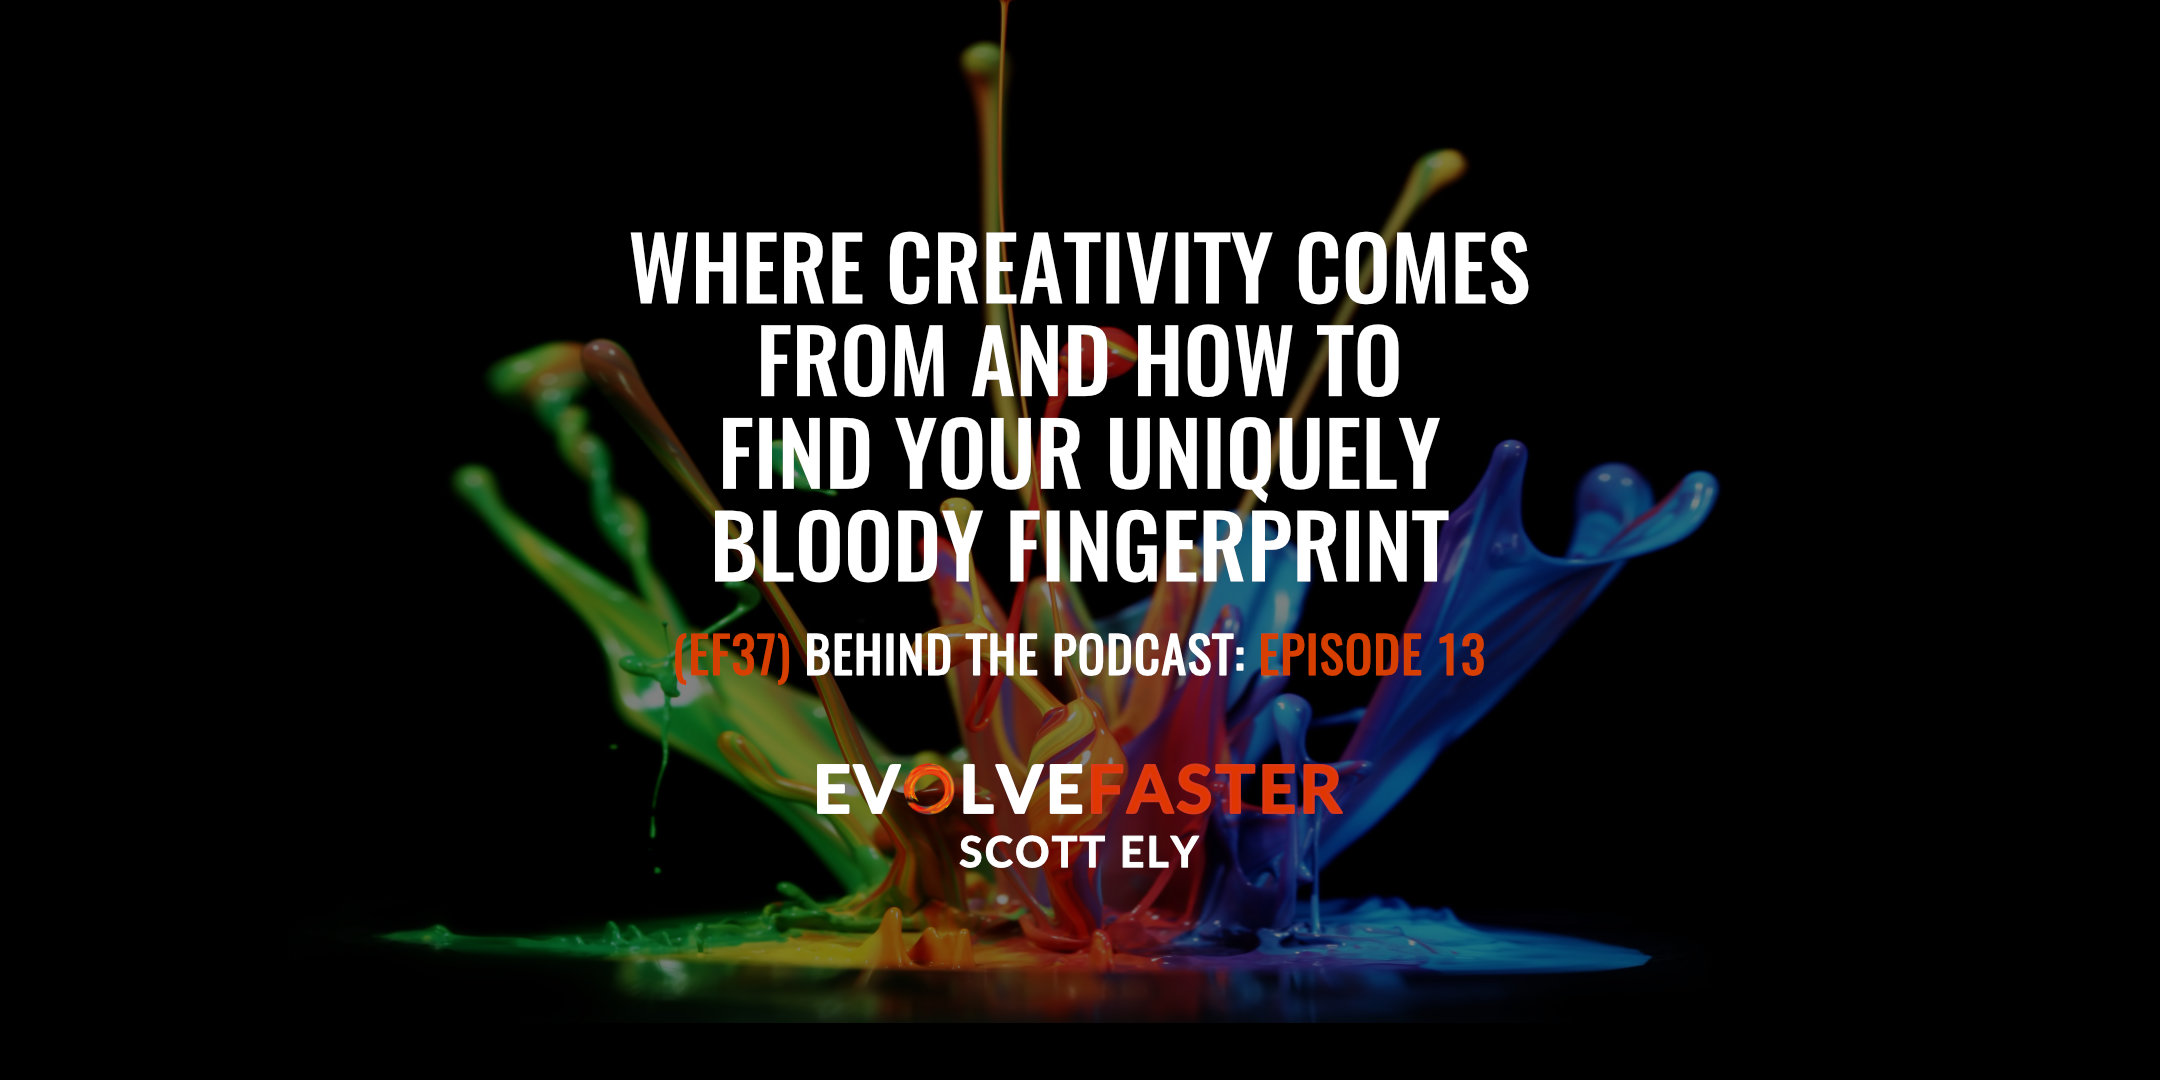 (EF37) BTP-EF13: Where Creativity Comes From and How to Find Your Uniquely Bloody Fingerprint Behind the Podcast of Episode EF13